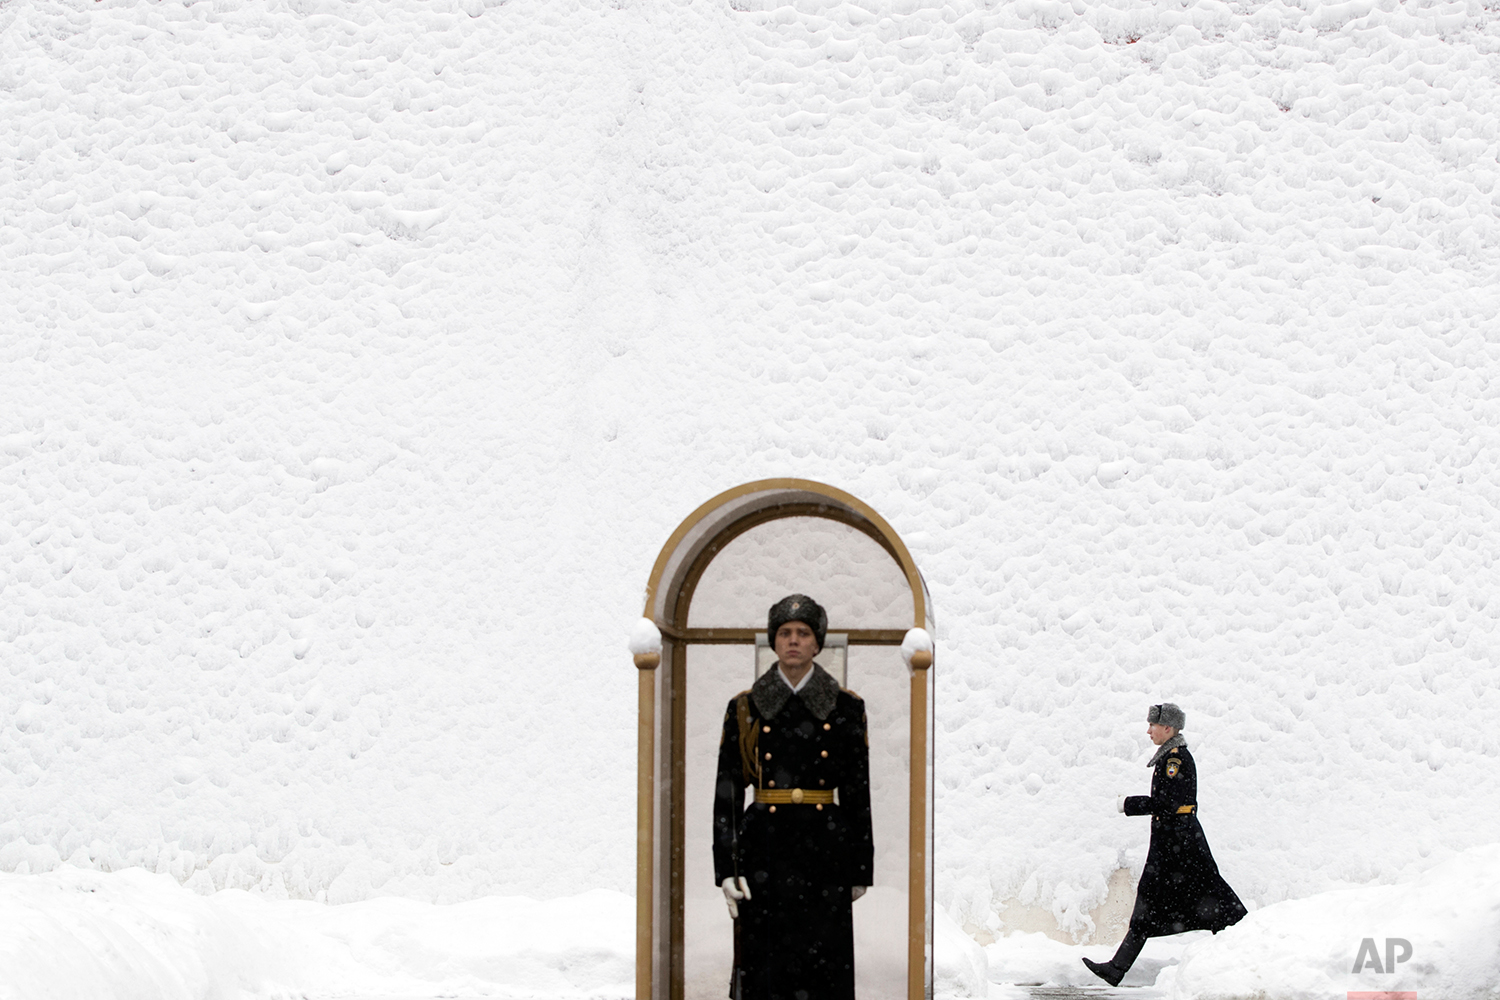 An Honor guard soldier walks along the Kremlin Wall, covered by snow, as his fellow soldier stands at the Tomb of Unknown Soldier in Moscow, Russia, Wednesday, Jan. 31, 2018. (AP Photo/Pavel Golovkin)